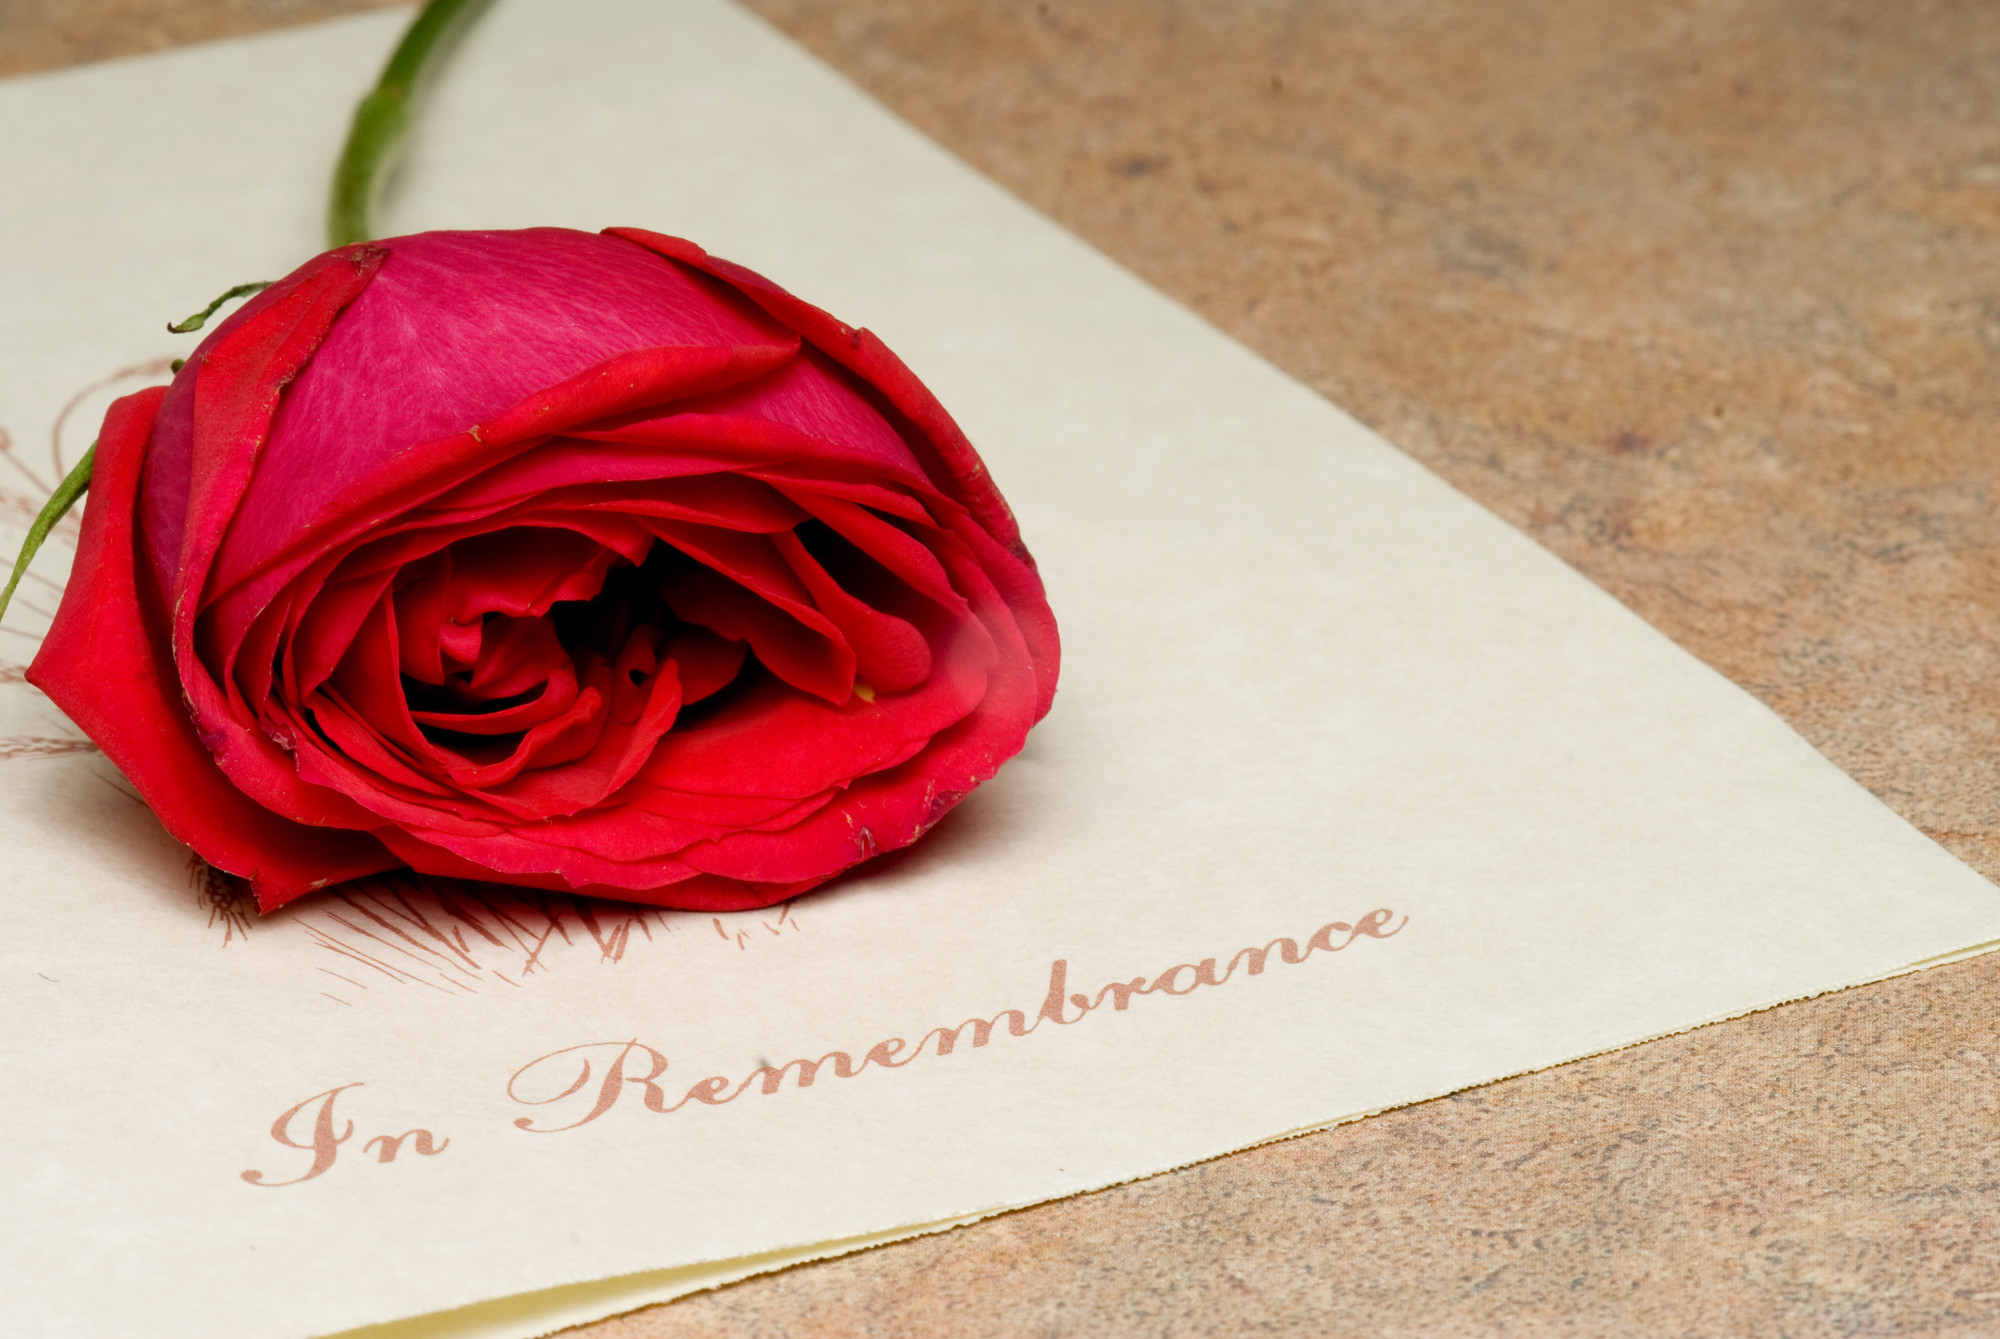 A Well-Crafted Goodbye: 5 Tips for Designing a Funeral Program